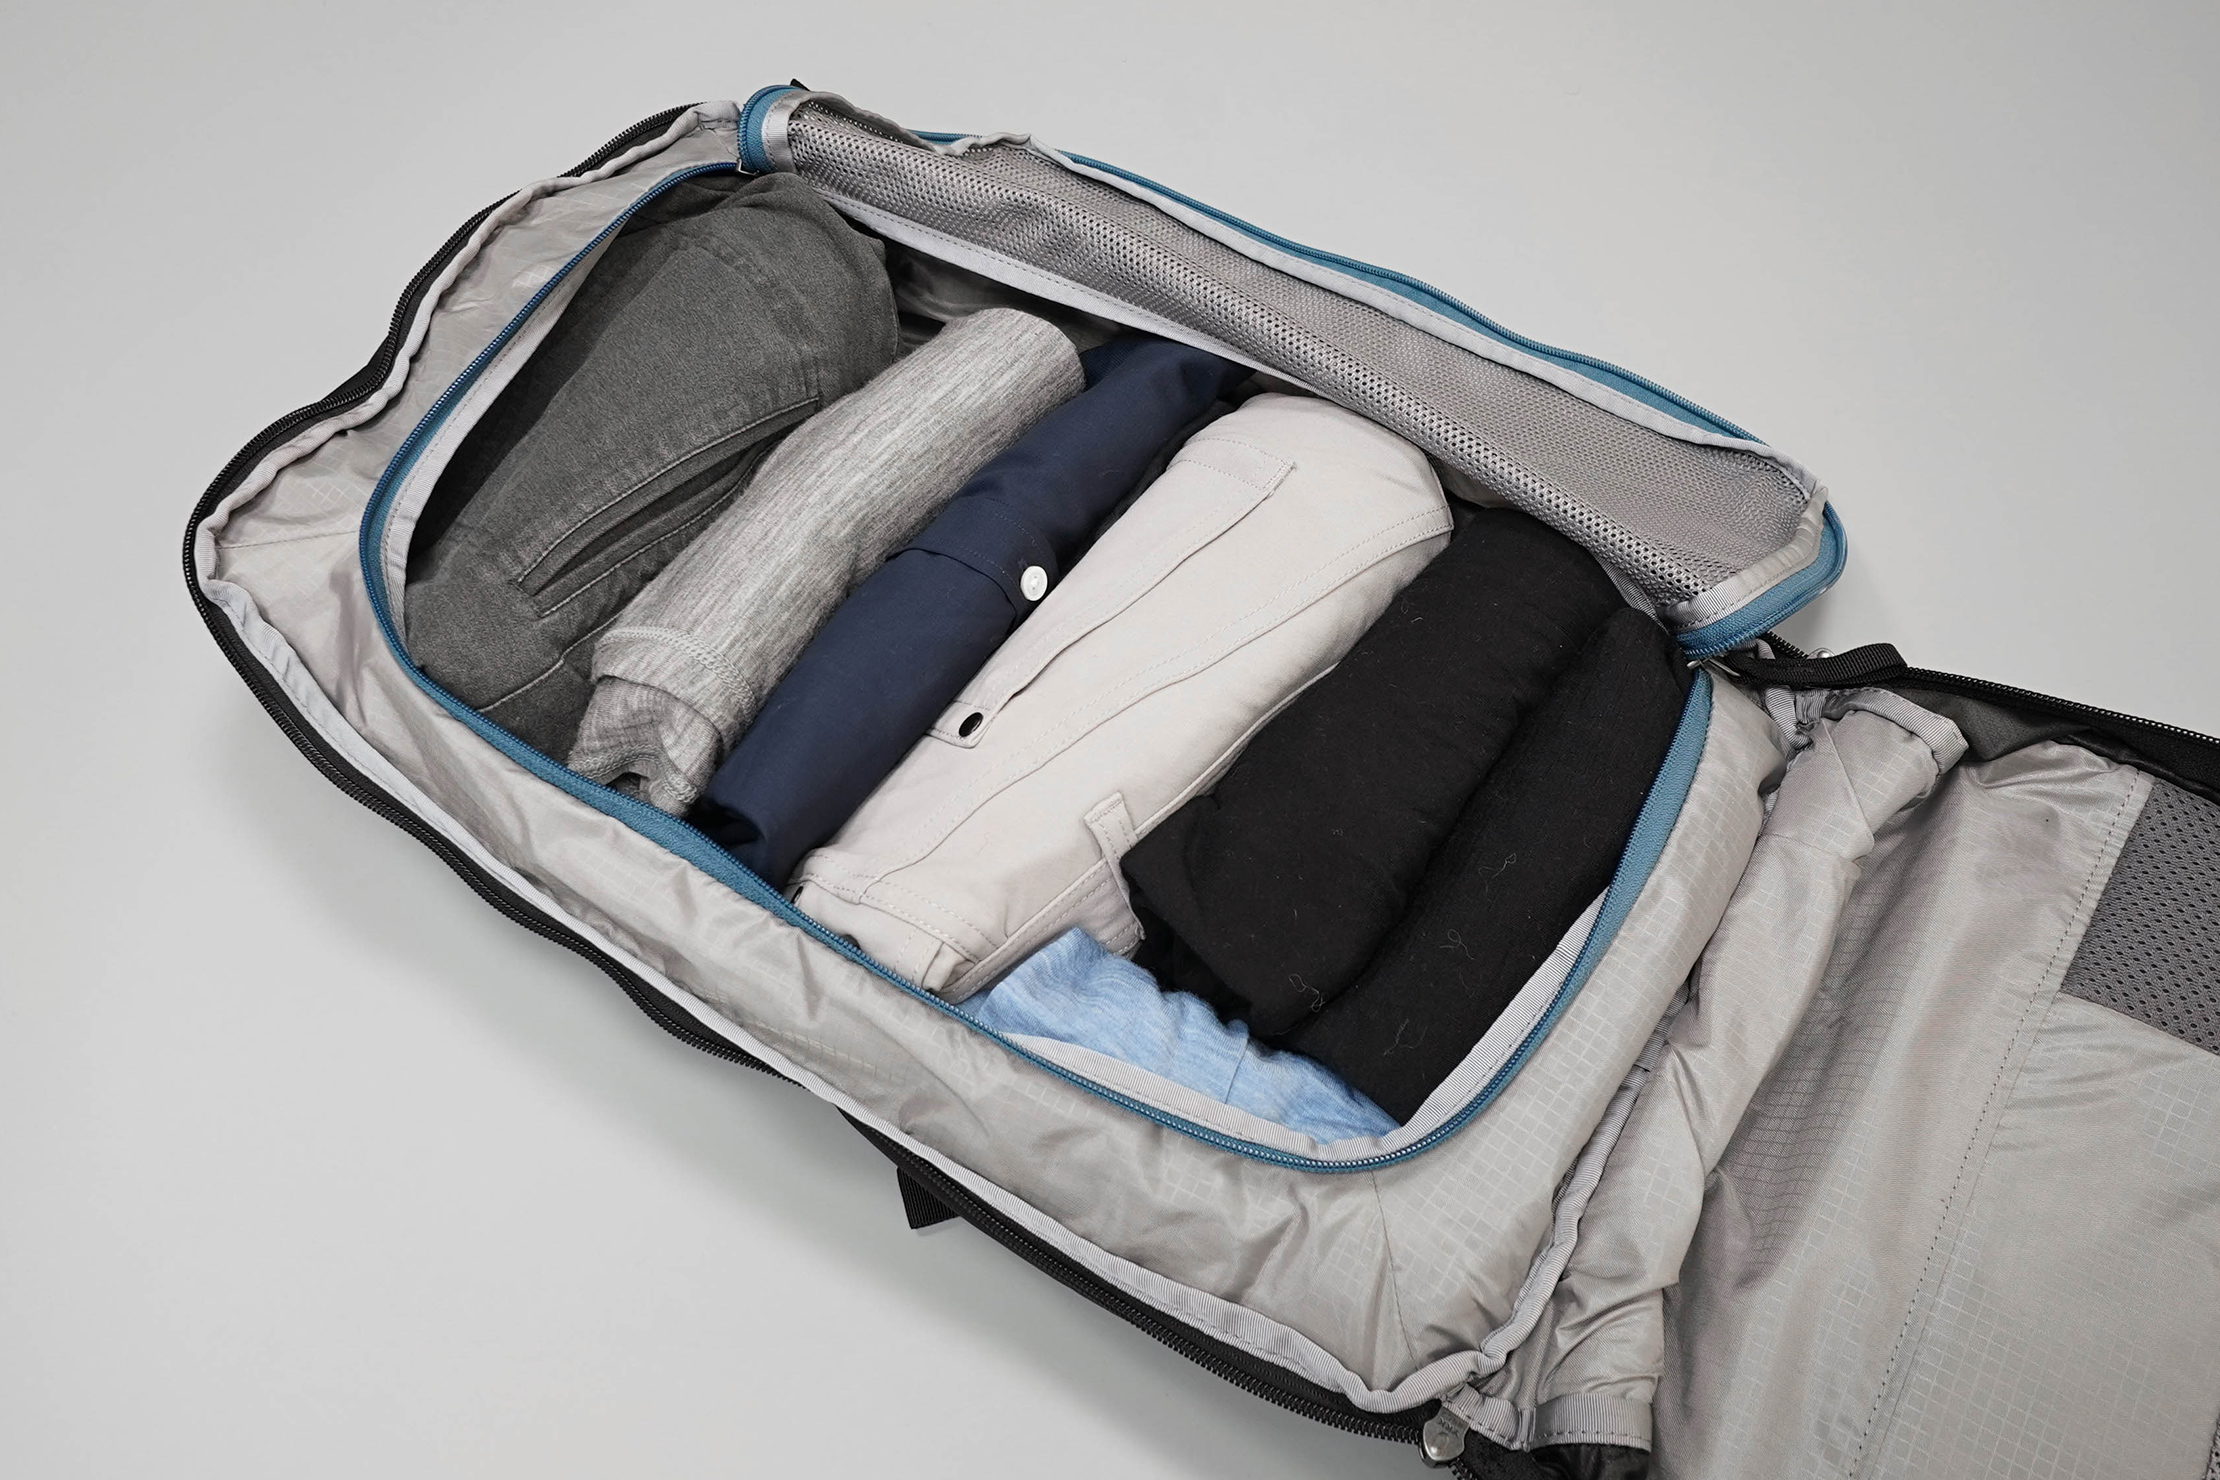 Gregory Border 35 Mesh Clothes Compartment